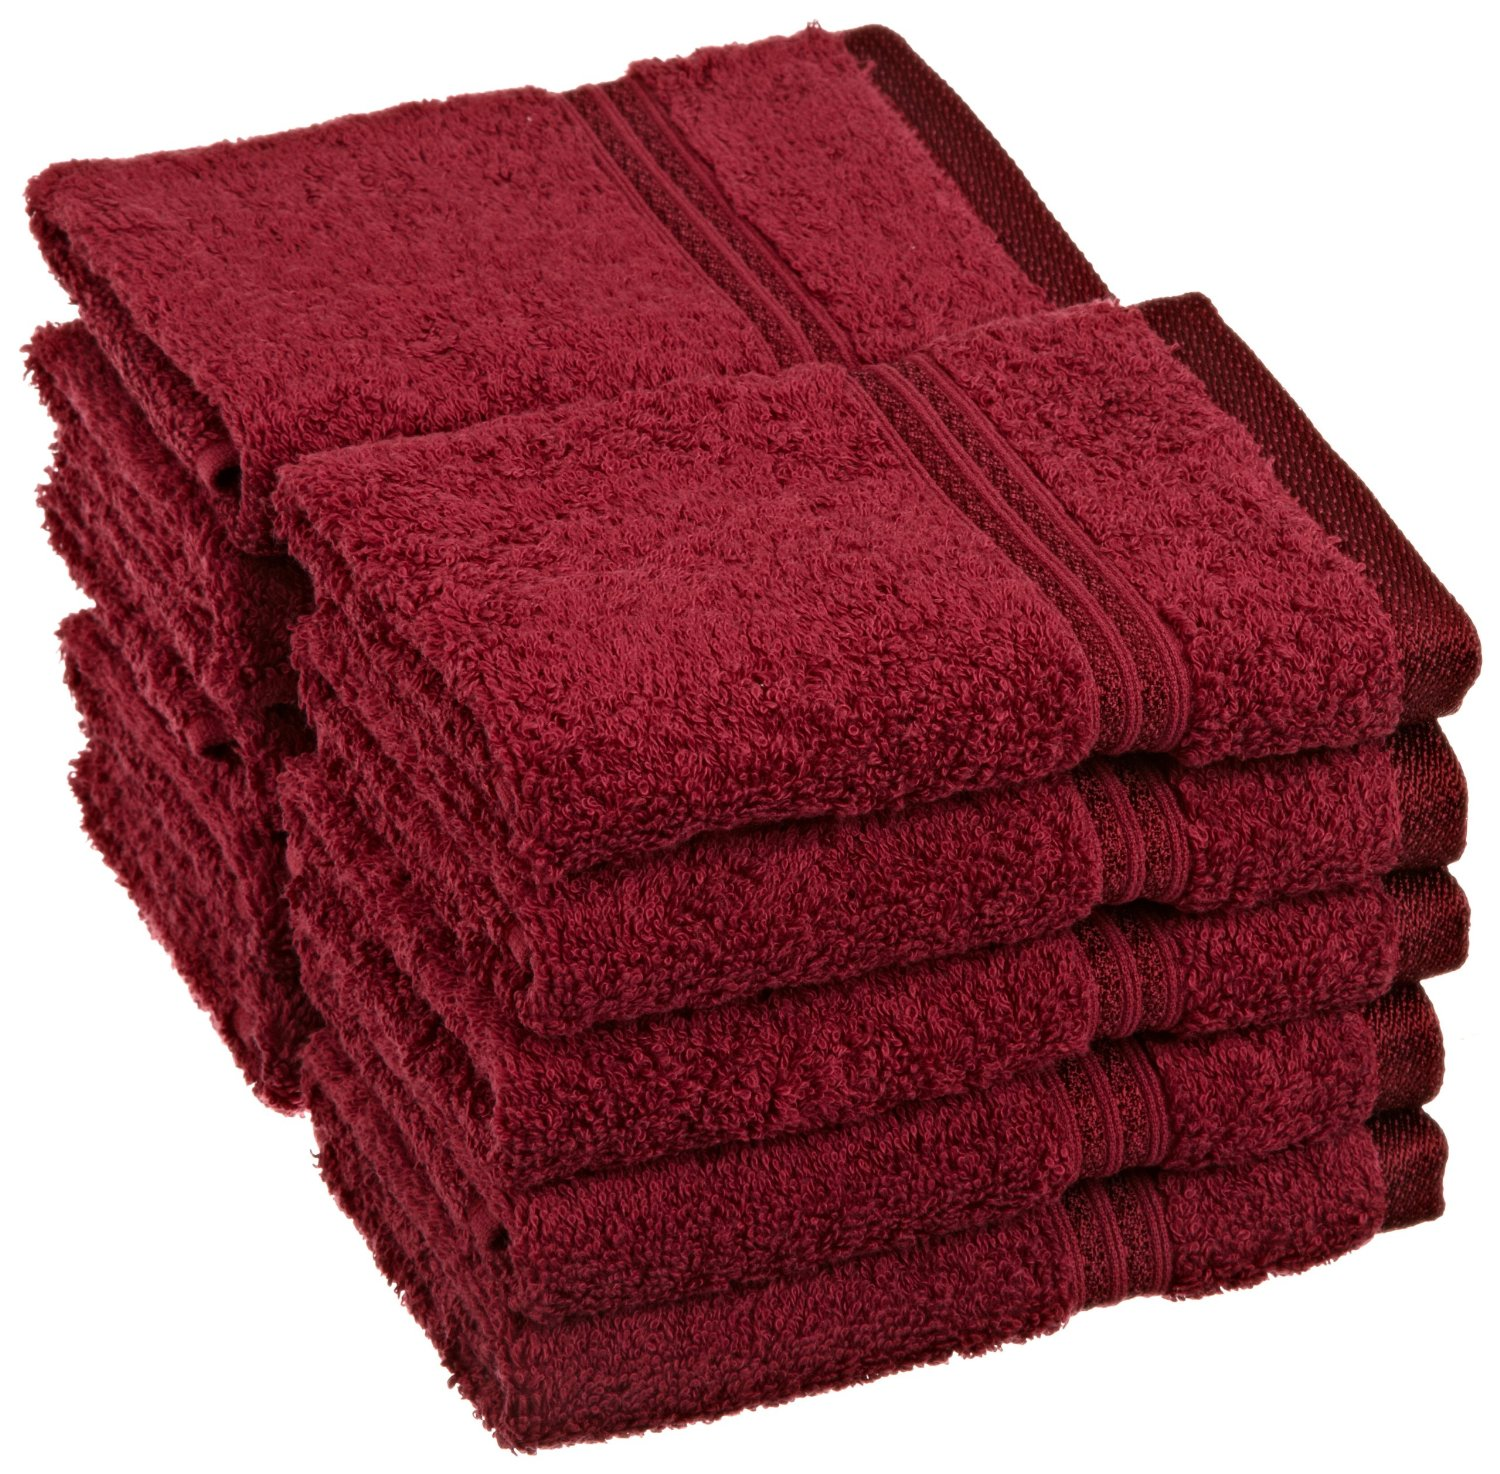 Egyptian Cotton 10PC Face Towels